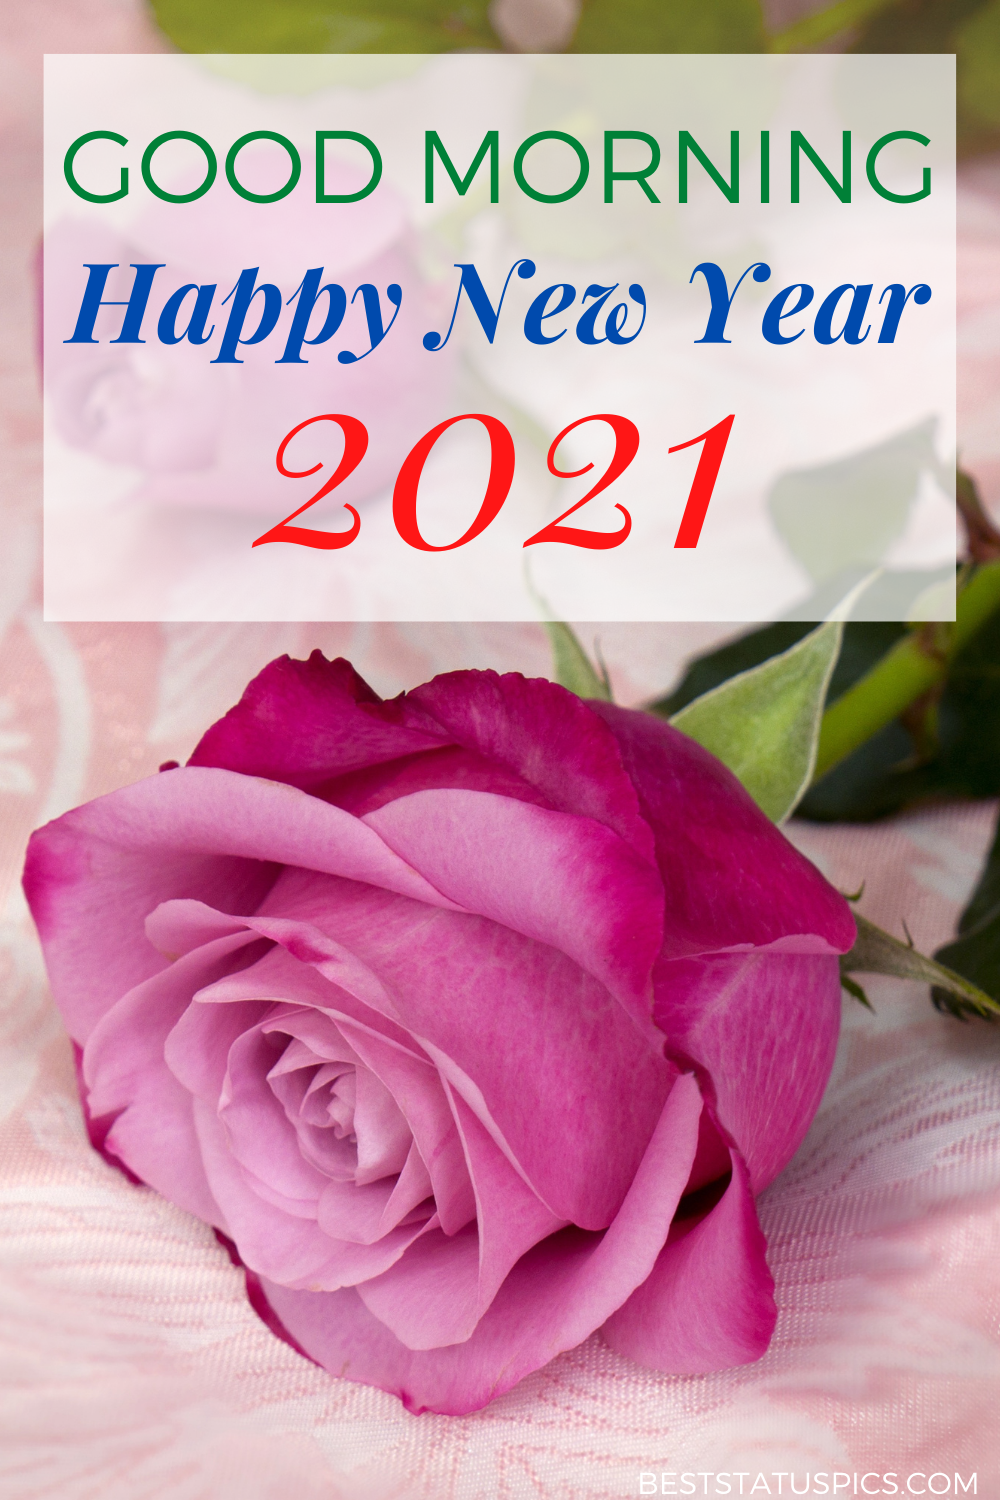 31 Good Morning Happy New Year 2021 Wishes Images Hd Good Morning Happy Happy New Happy New Year Pictures